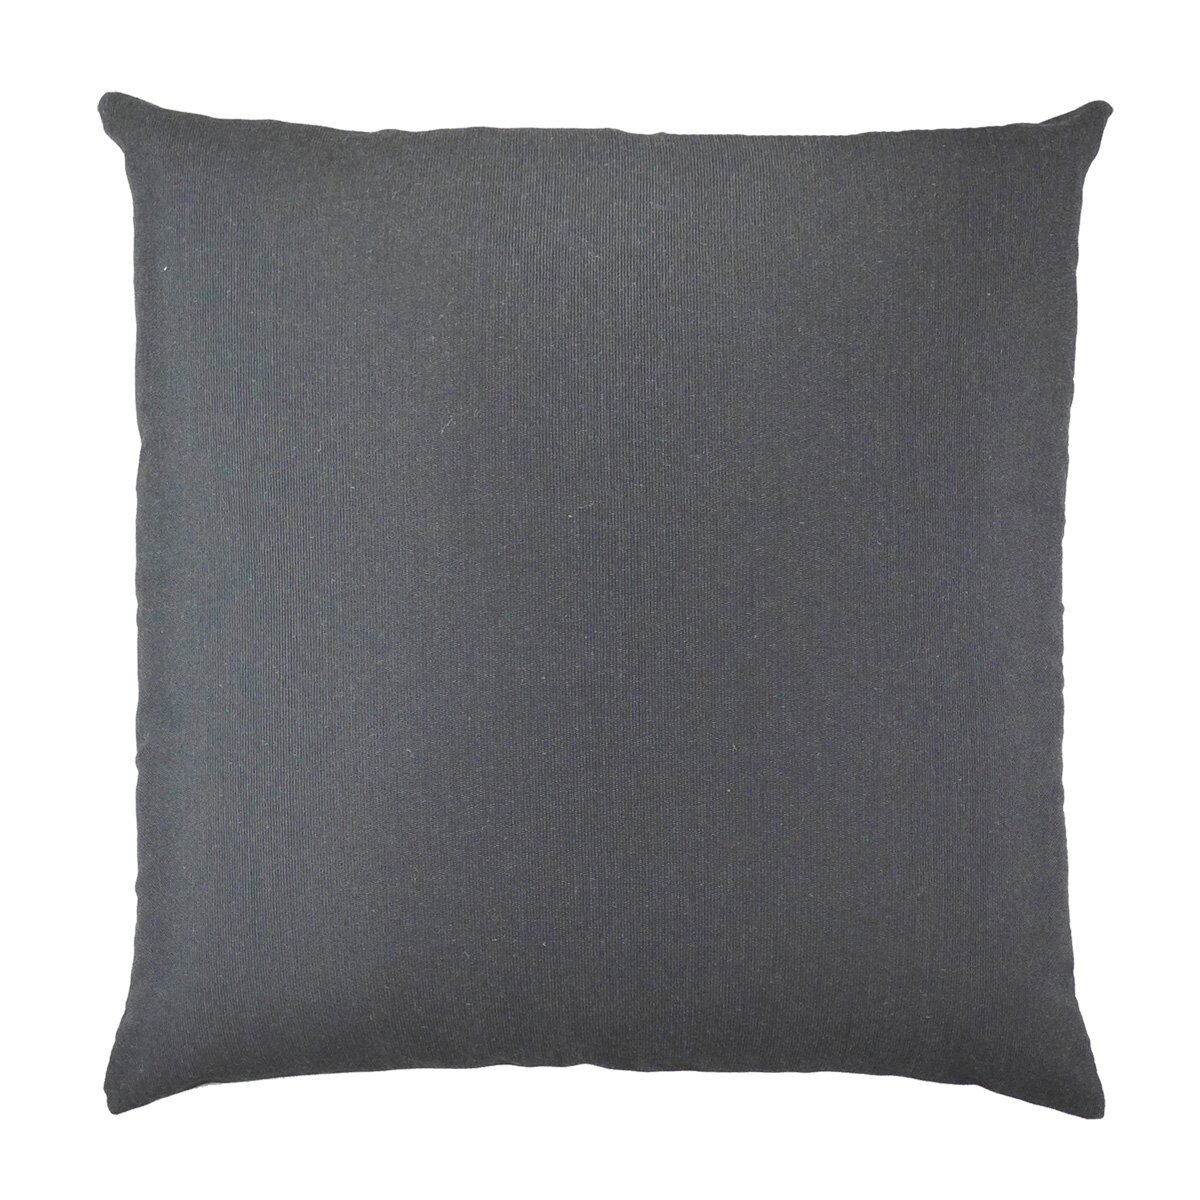 NECTARmodern Linked Embroidered Throw Pillow & Reviews Wayfair